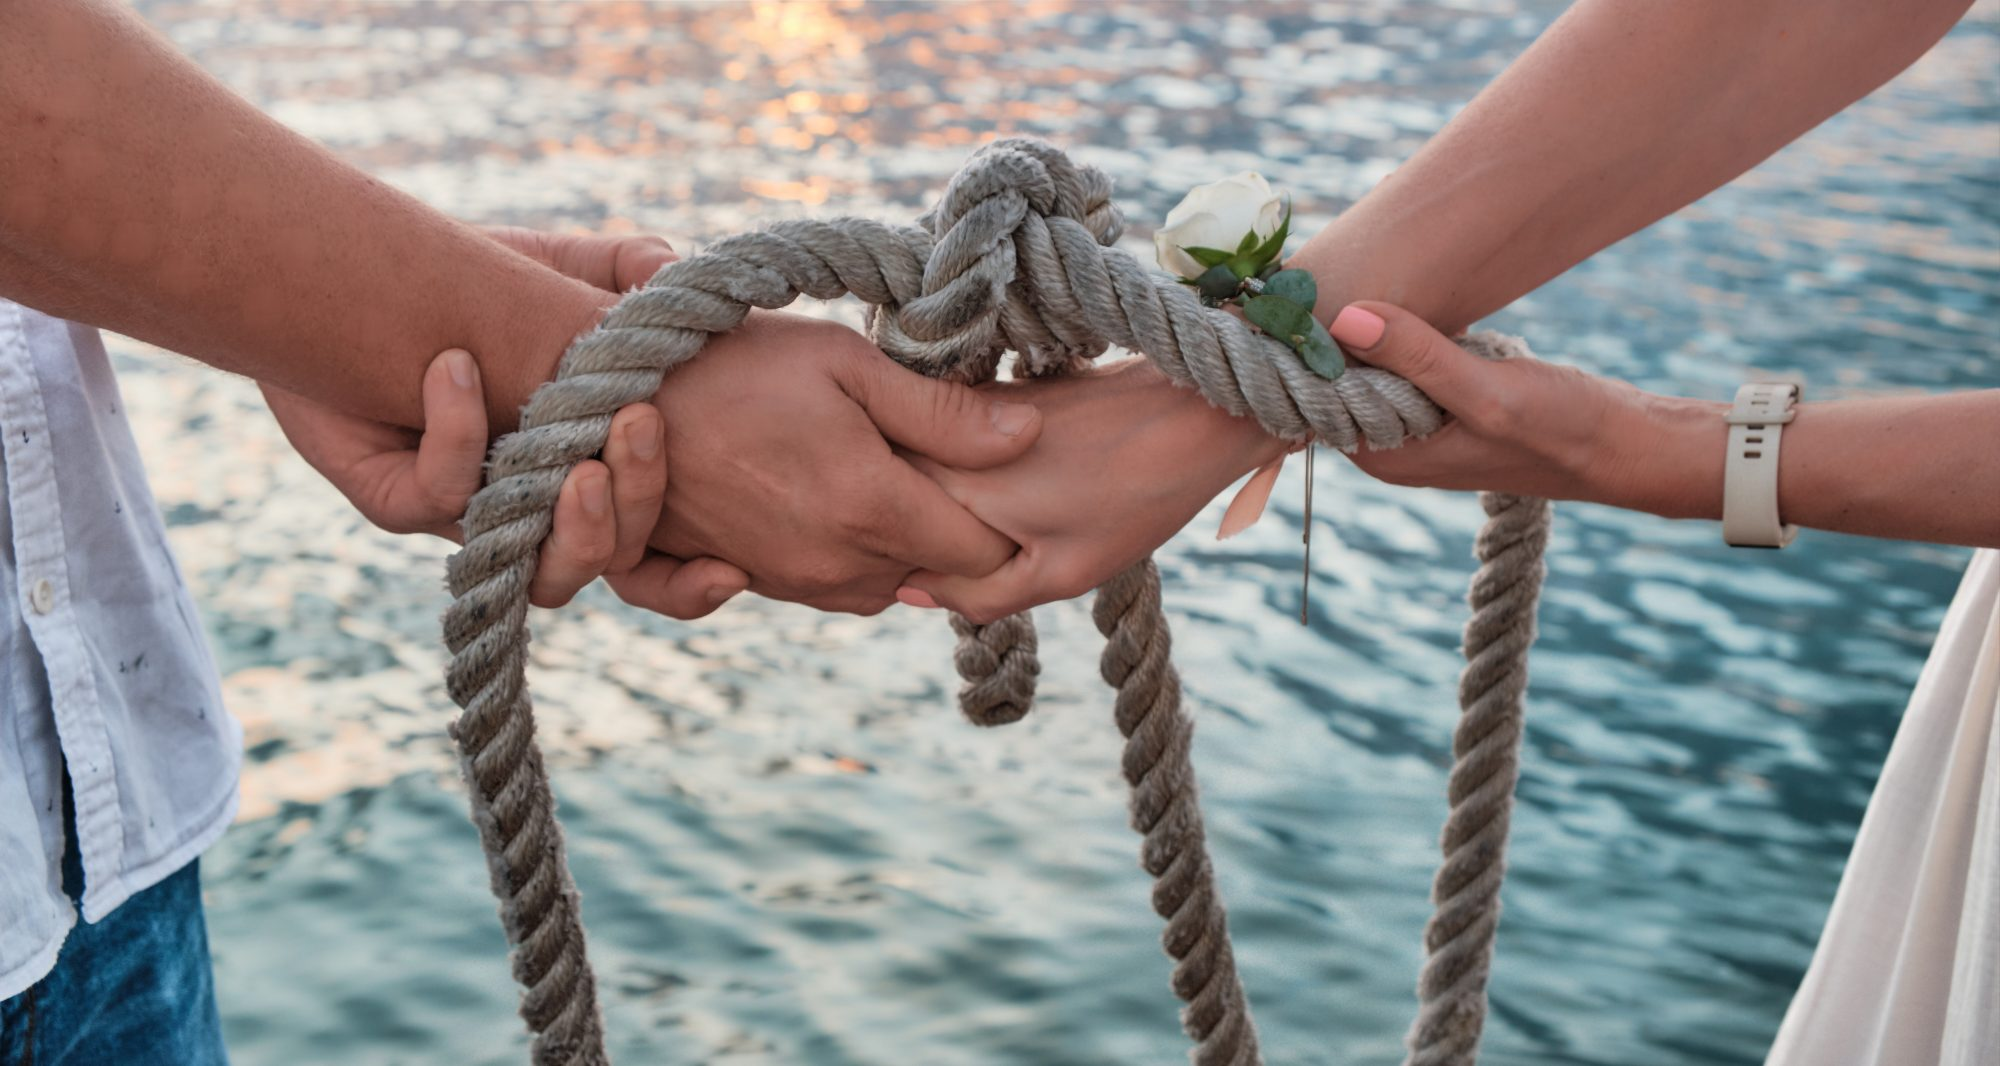 couple's hands tied with rope at handfasting ceremony by the beach